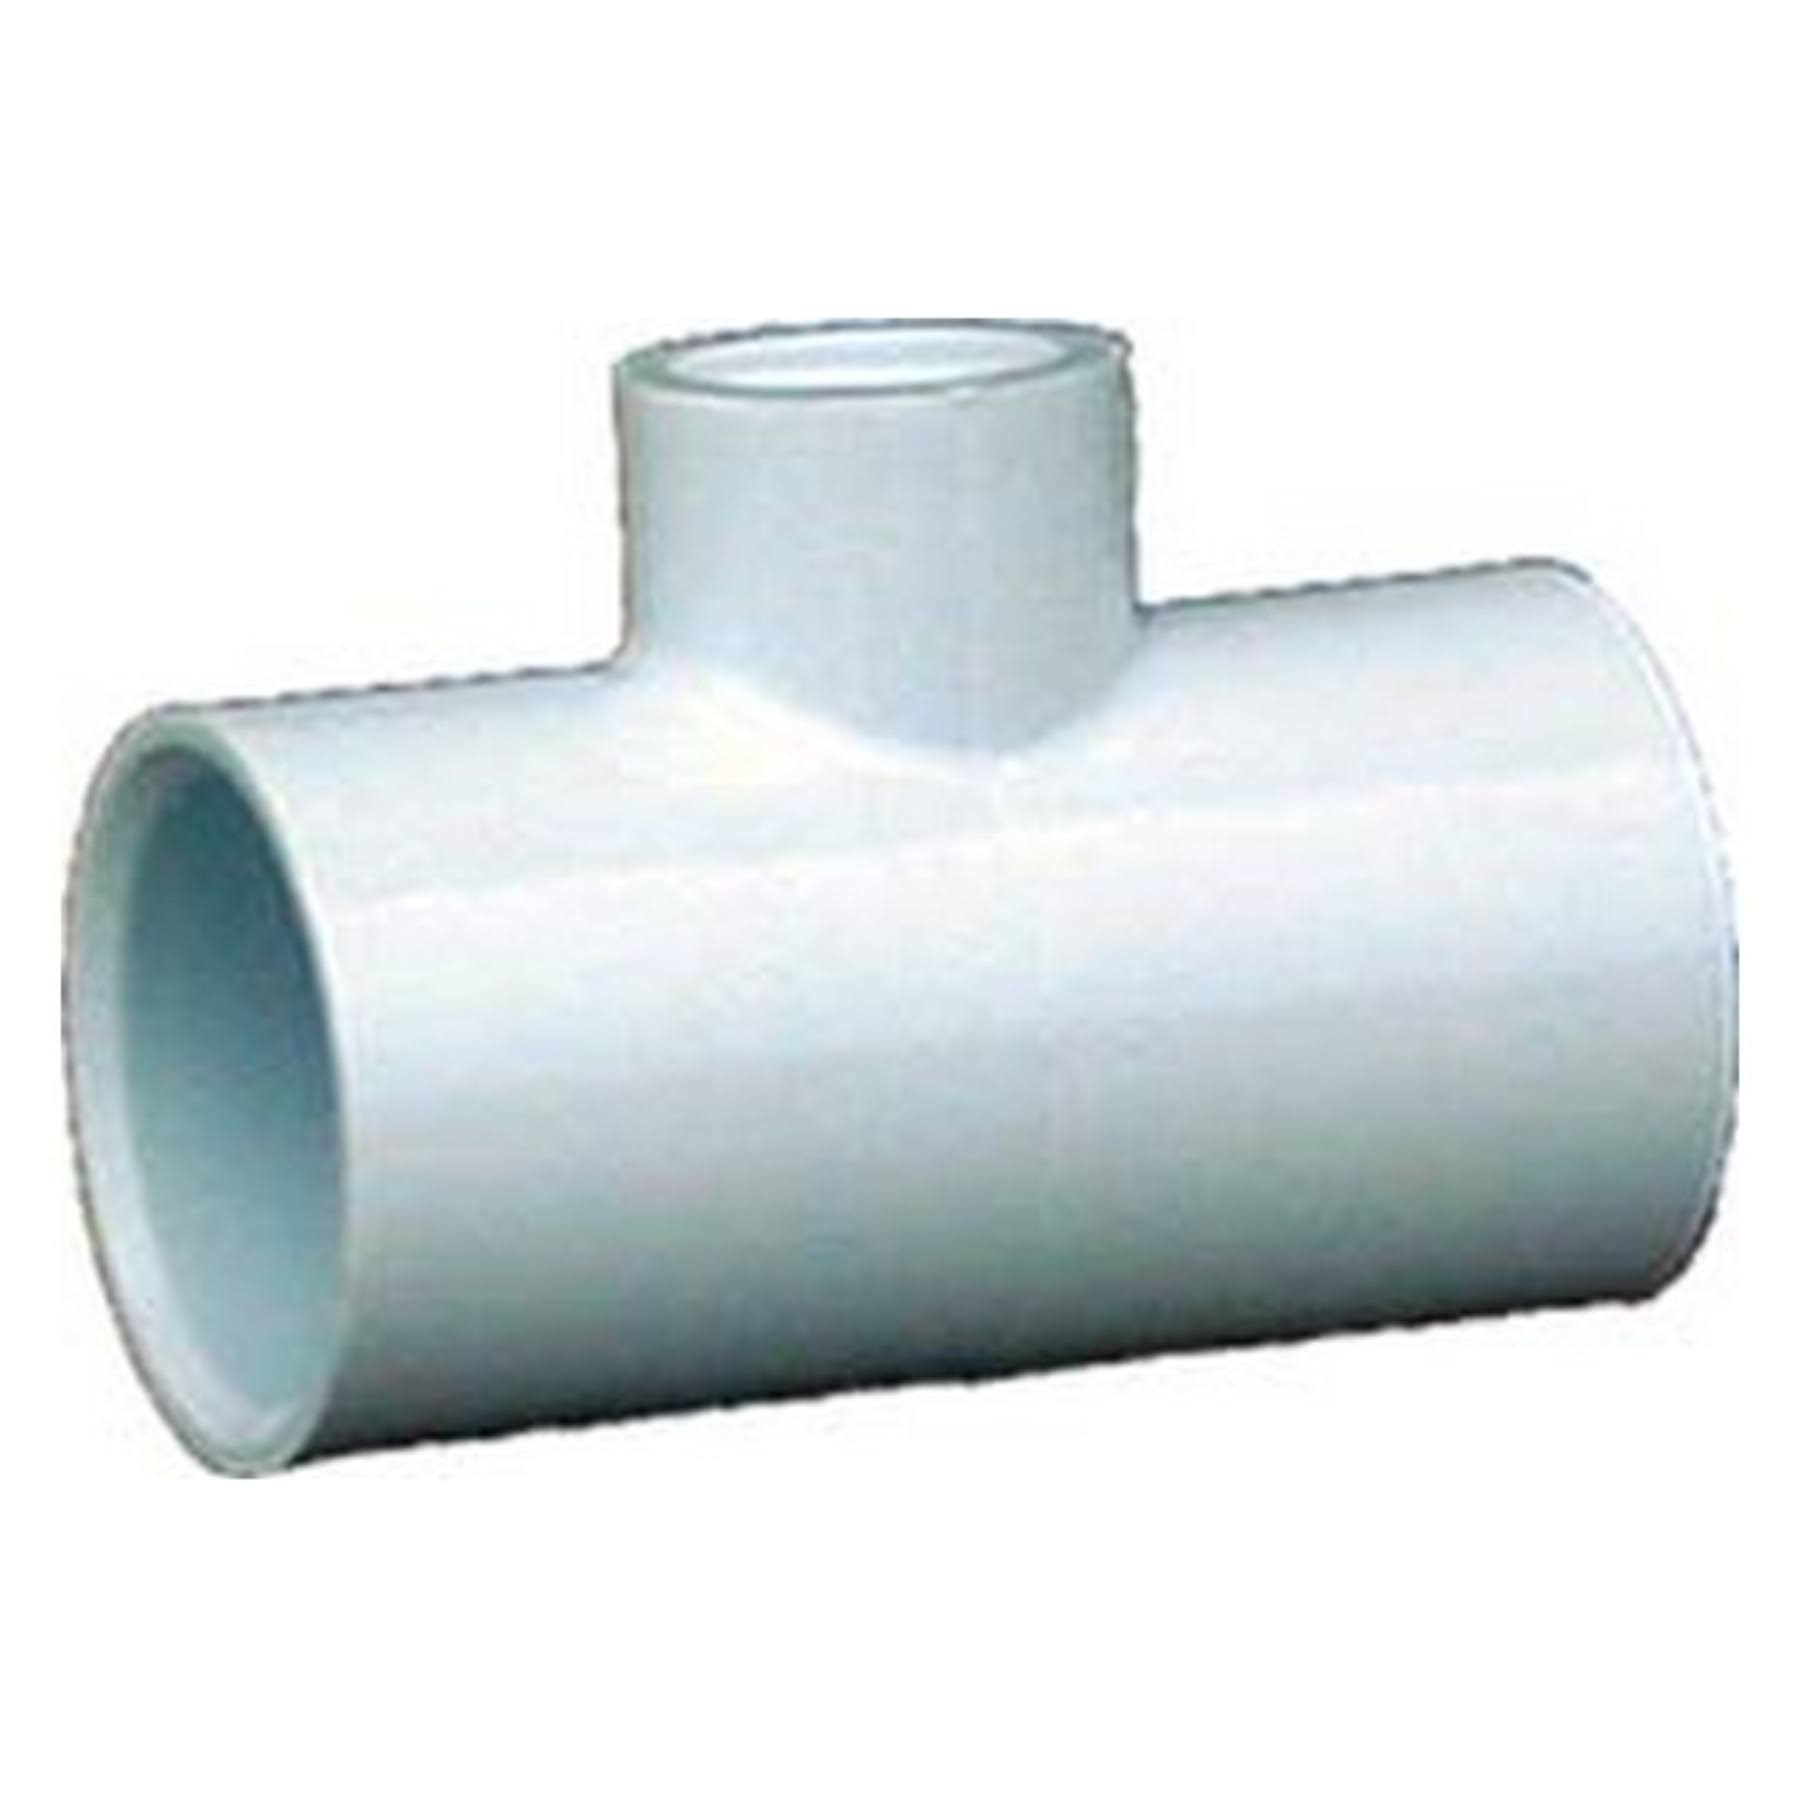 "Genova Schedule 40 Pressure Solvent X Threaded Tee - 1"" x 1/2"""